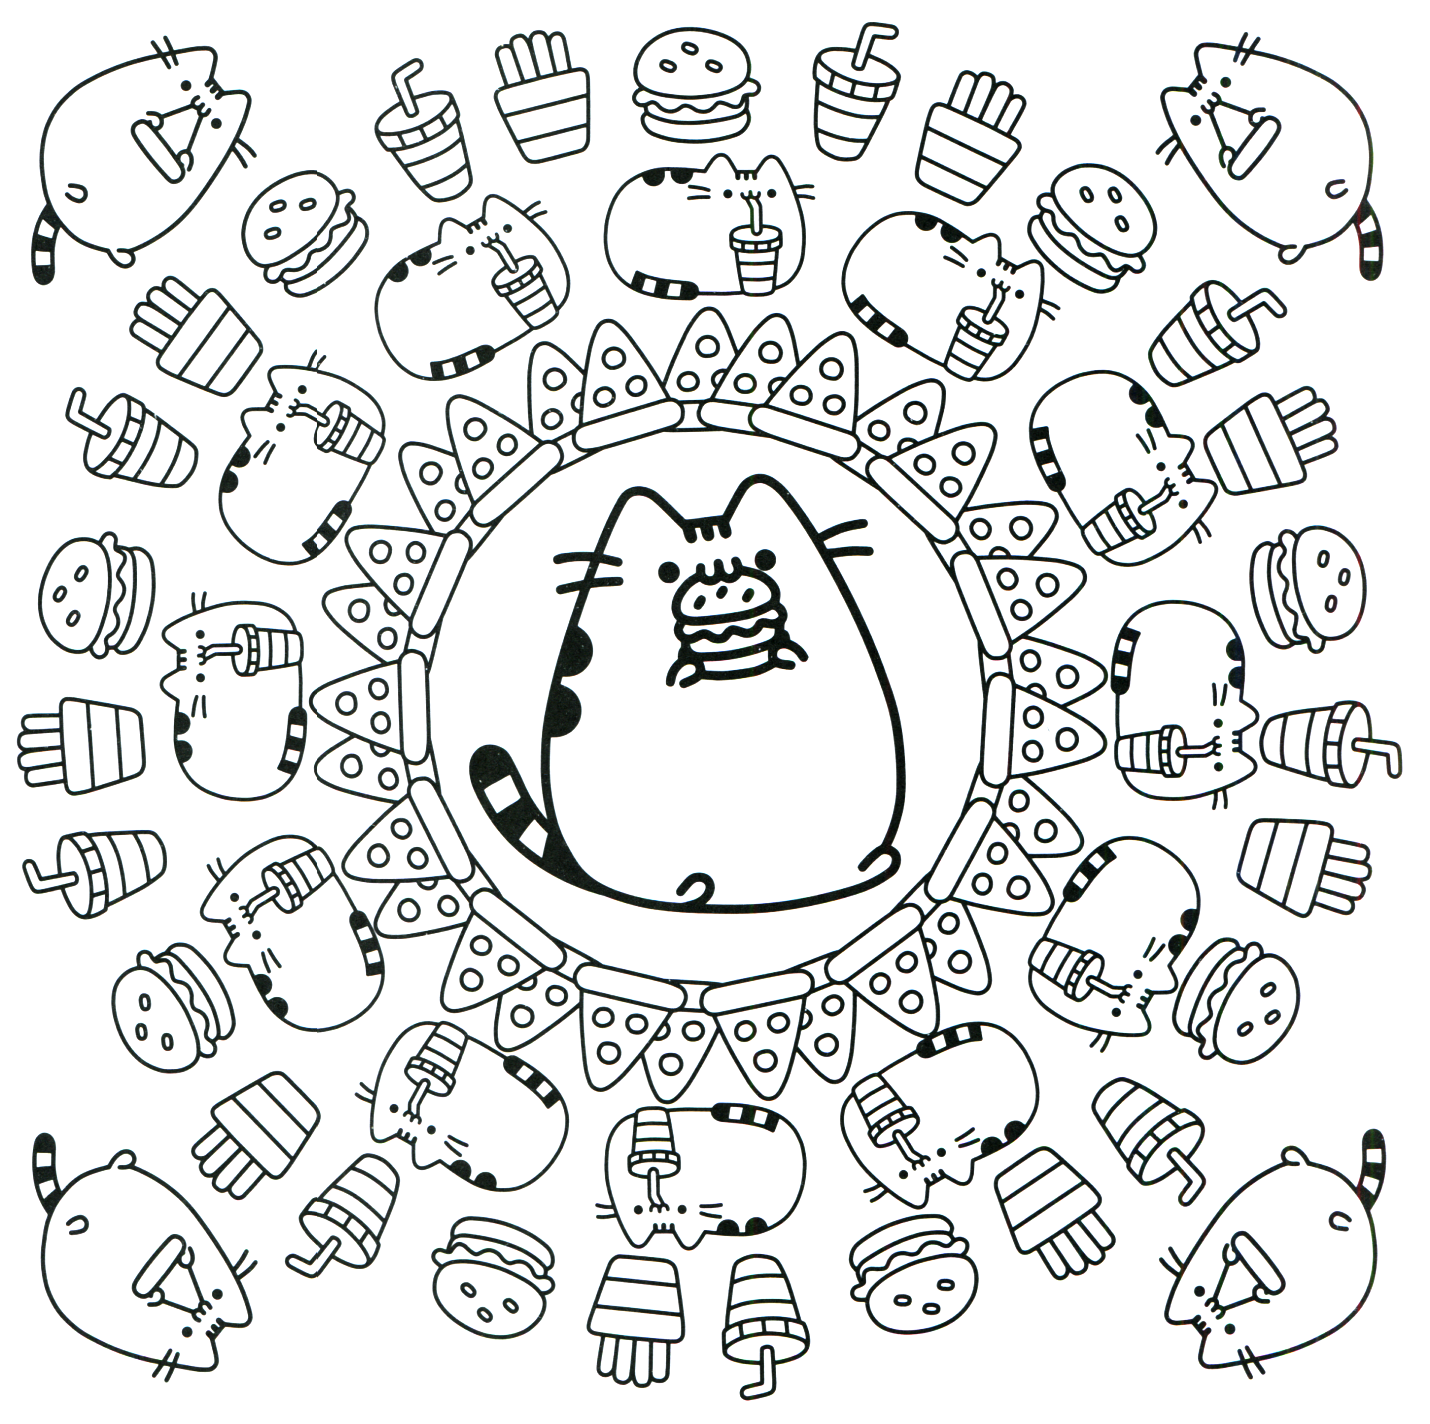 Pusheen Coloring Book Pusheen Pusheen the Cat | caratulas ...